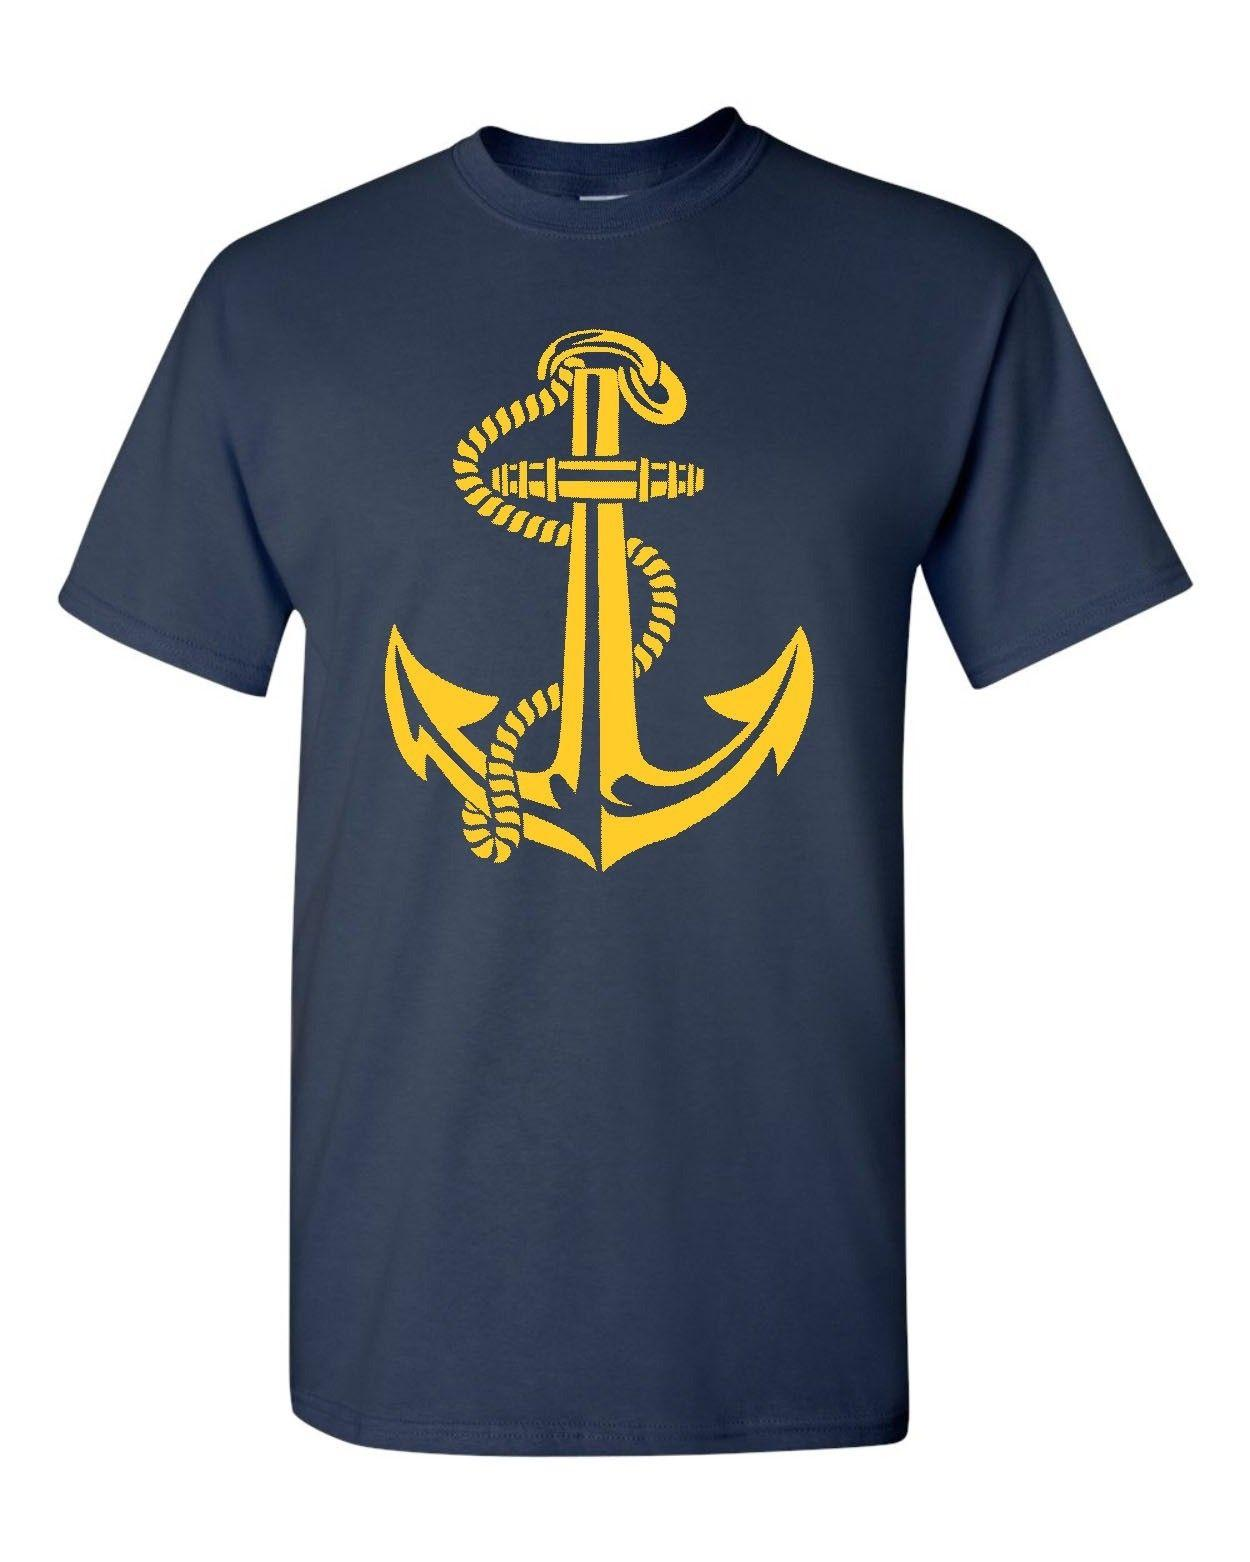 a5528332 Anchor US Navy Men's Tee Shirt 1812 Funny free shipping Unisex Casual tee  gift